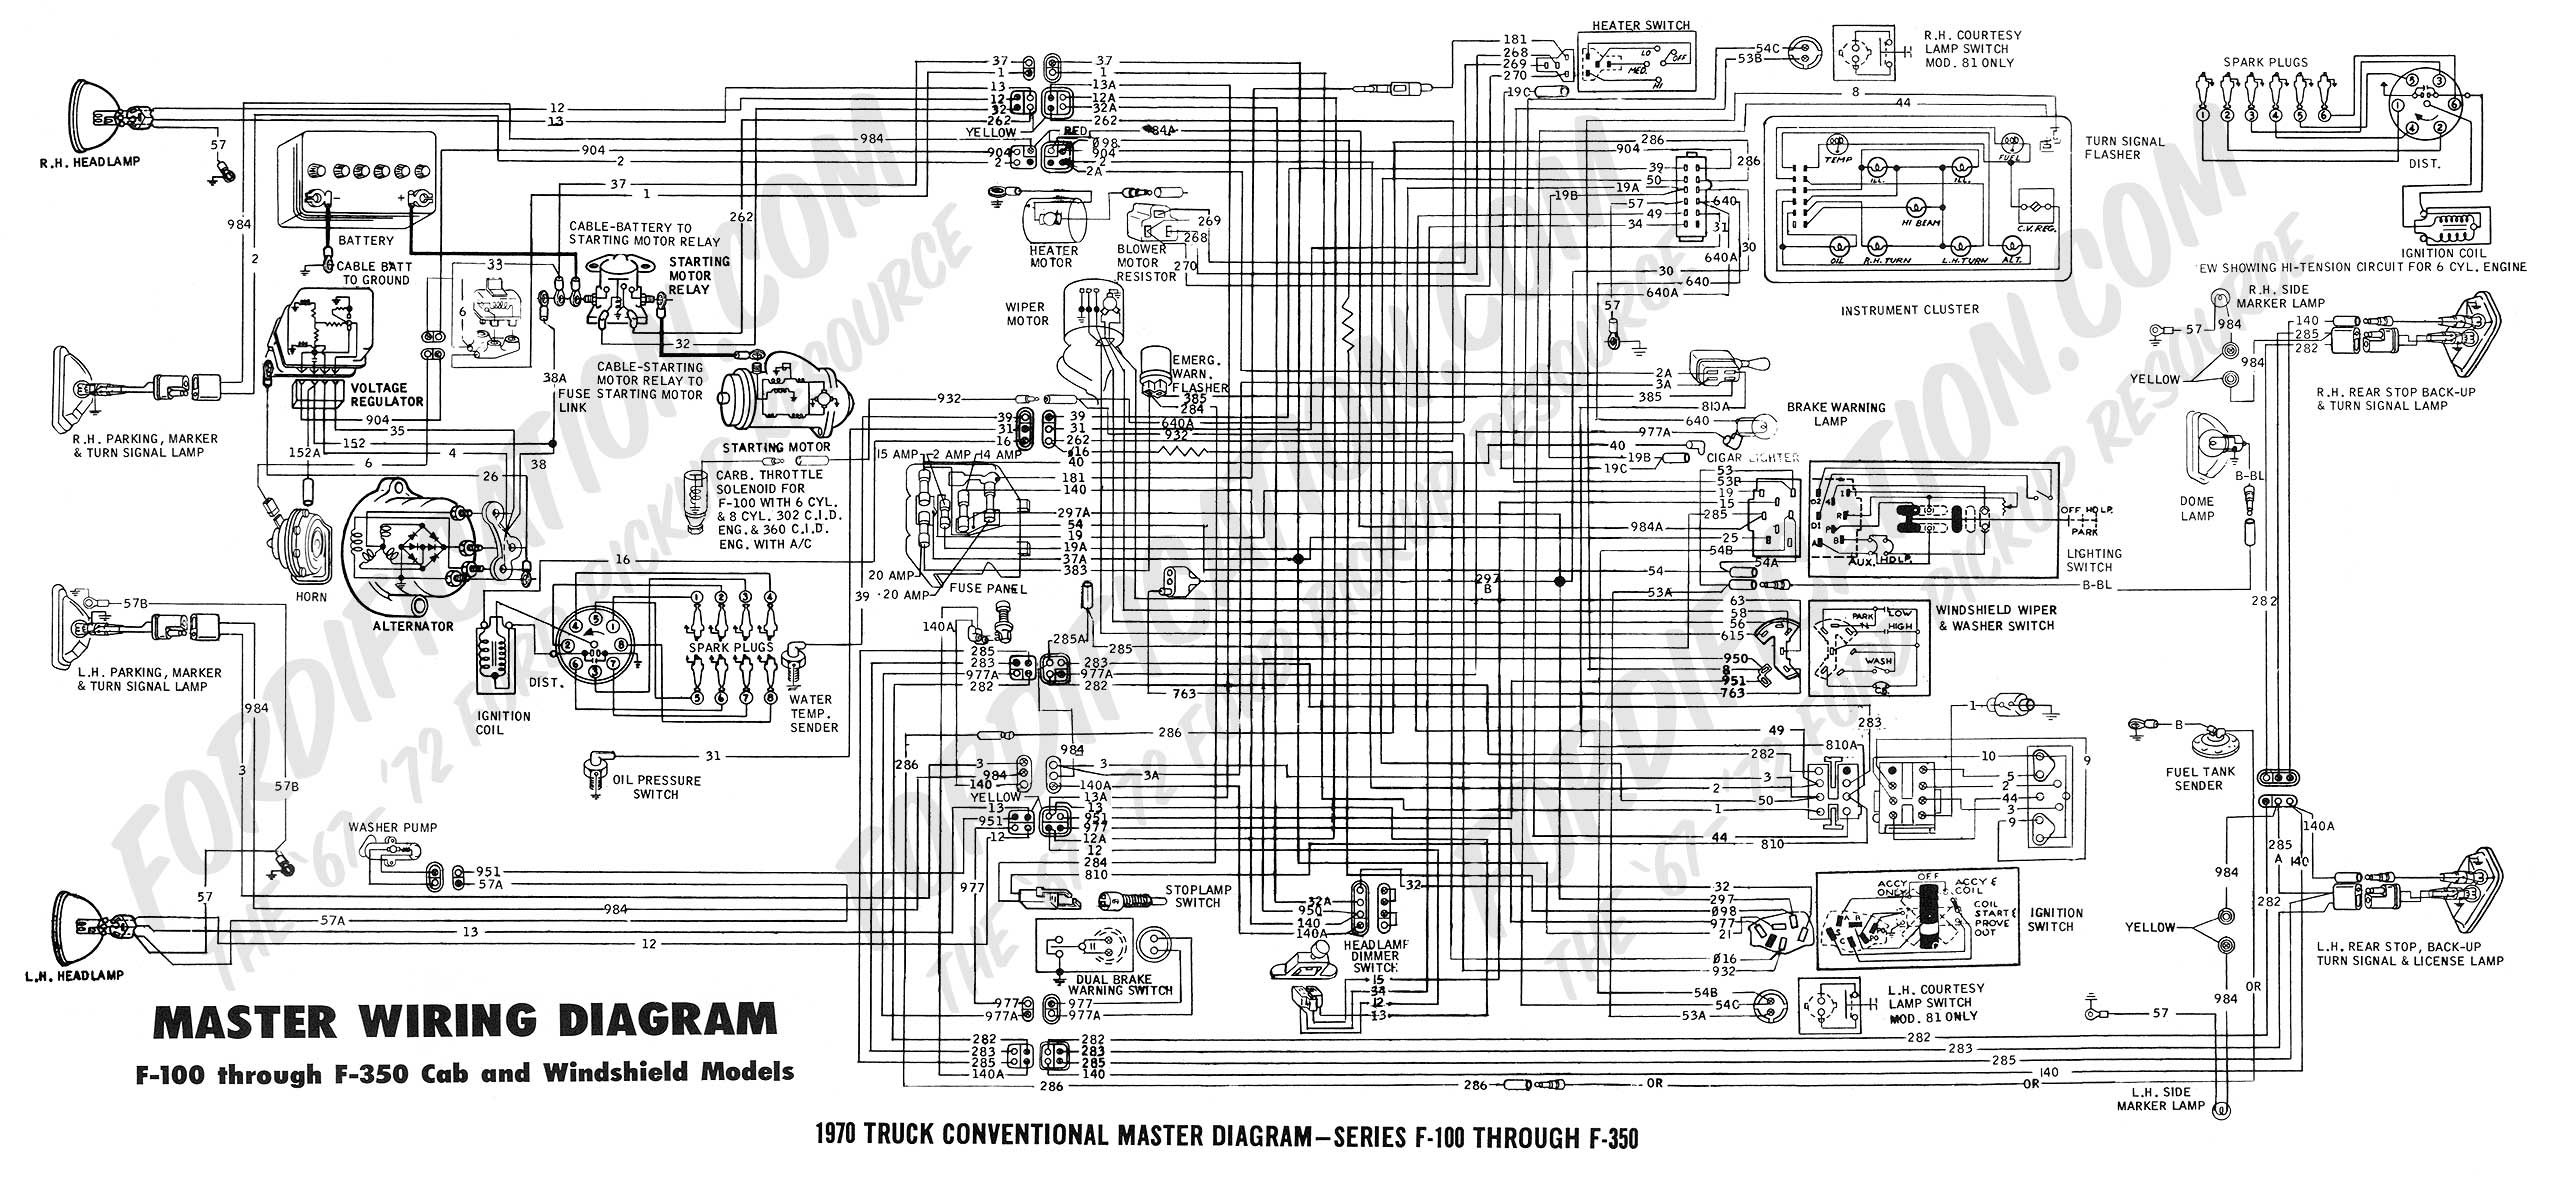 94 F150 Transfer Case Wiring Diagram Online Manuual Of Harness Data Rh 46 Hrc Solarhandel De 1994 Starter Ignition